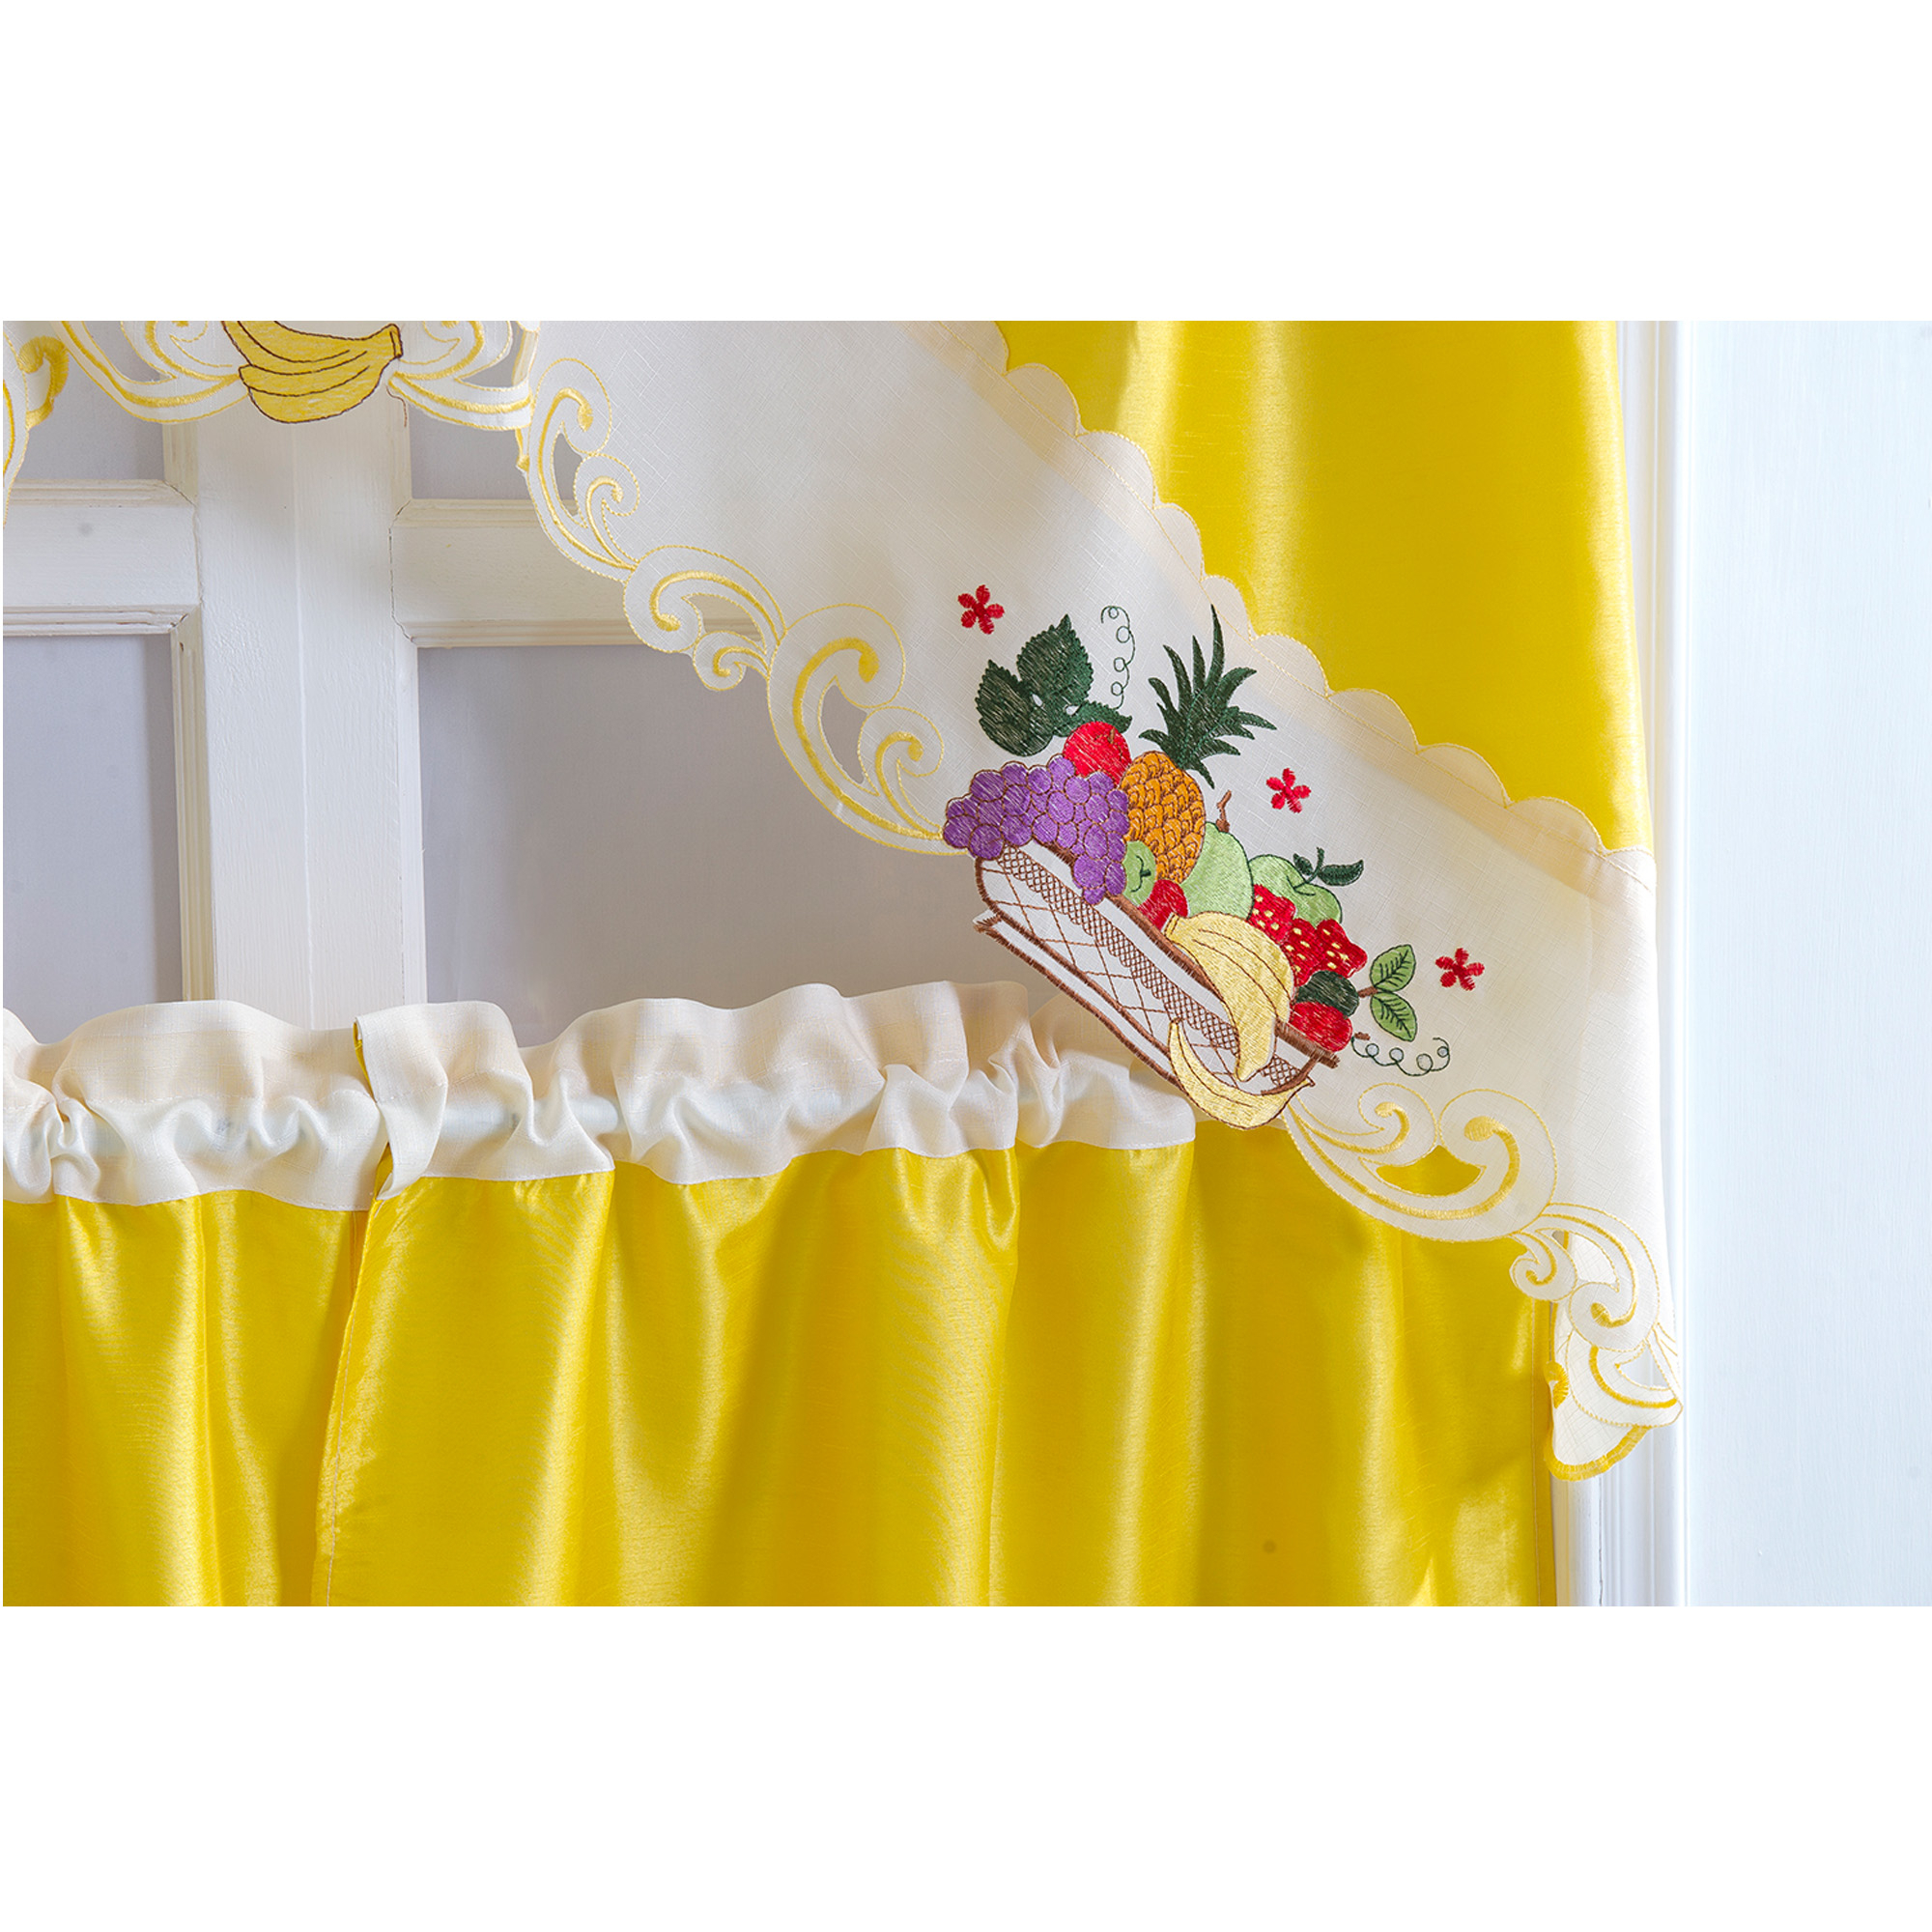 Well Liked Imperial Flower Jacquard Tier And Valance Kitchen Curtain Sets For Details About Rt Designers Collection Vintage Tier & Swag Kitchen Curtain Set – Multi (View 14 of 20)